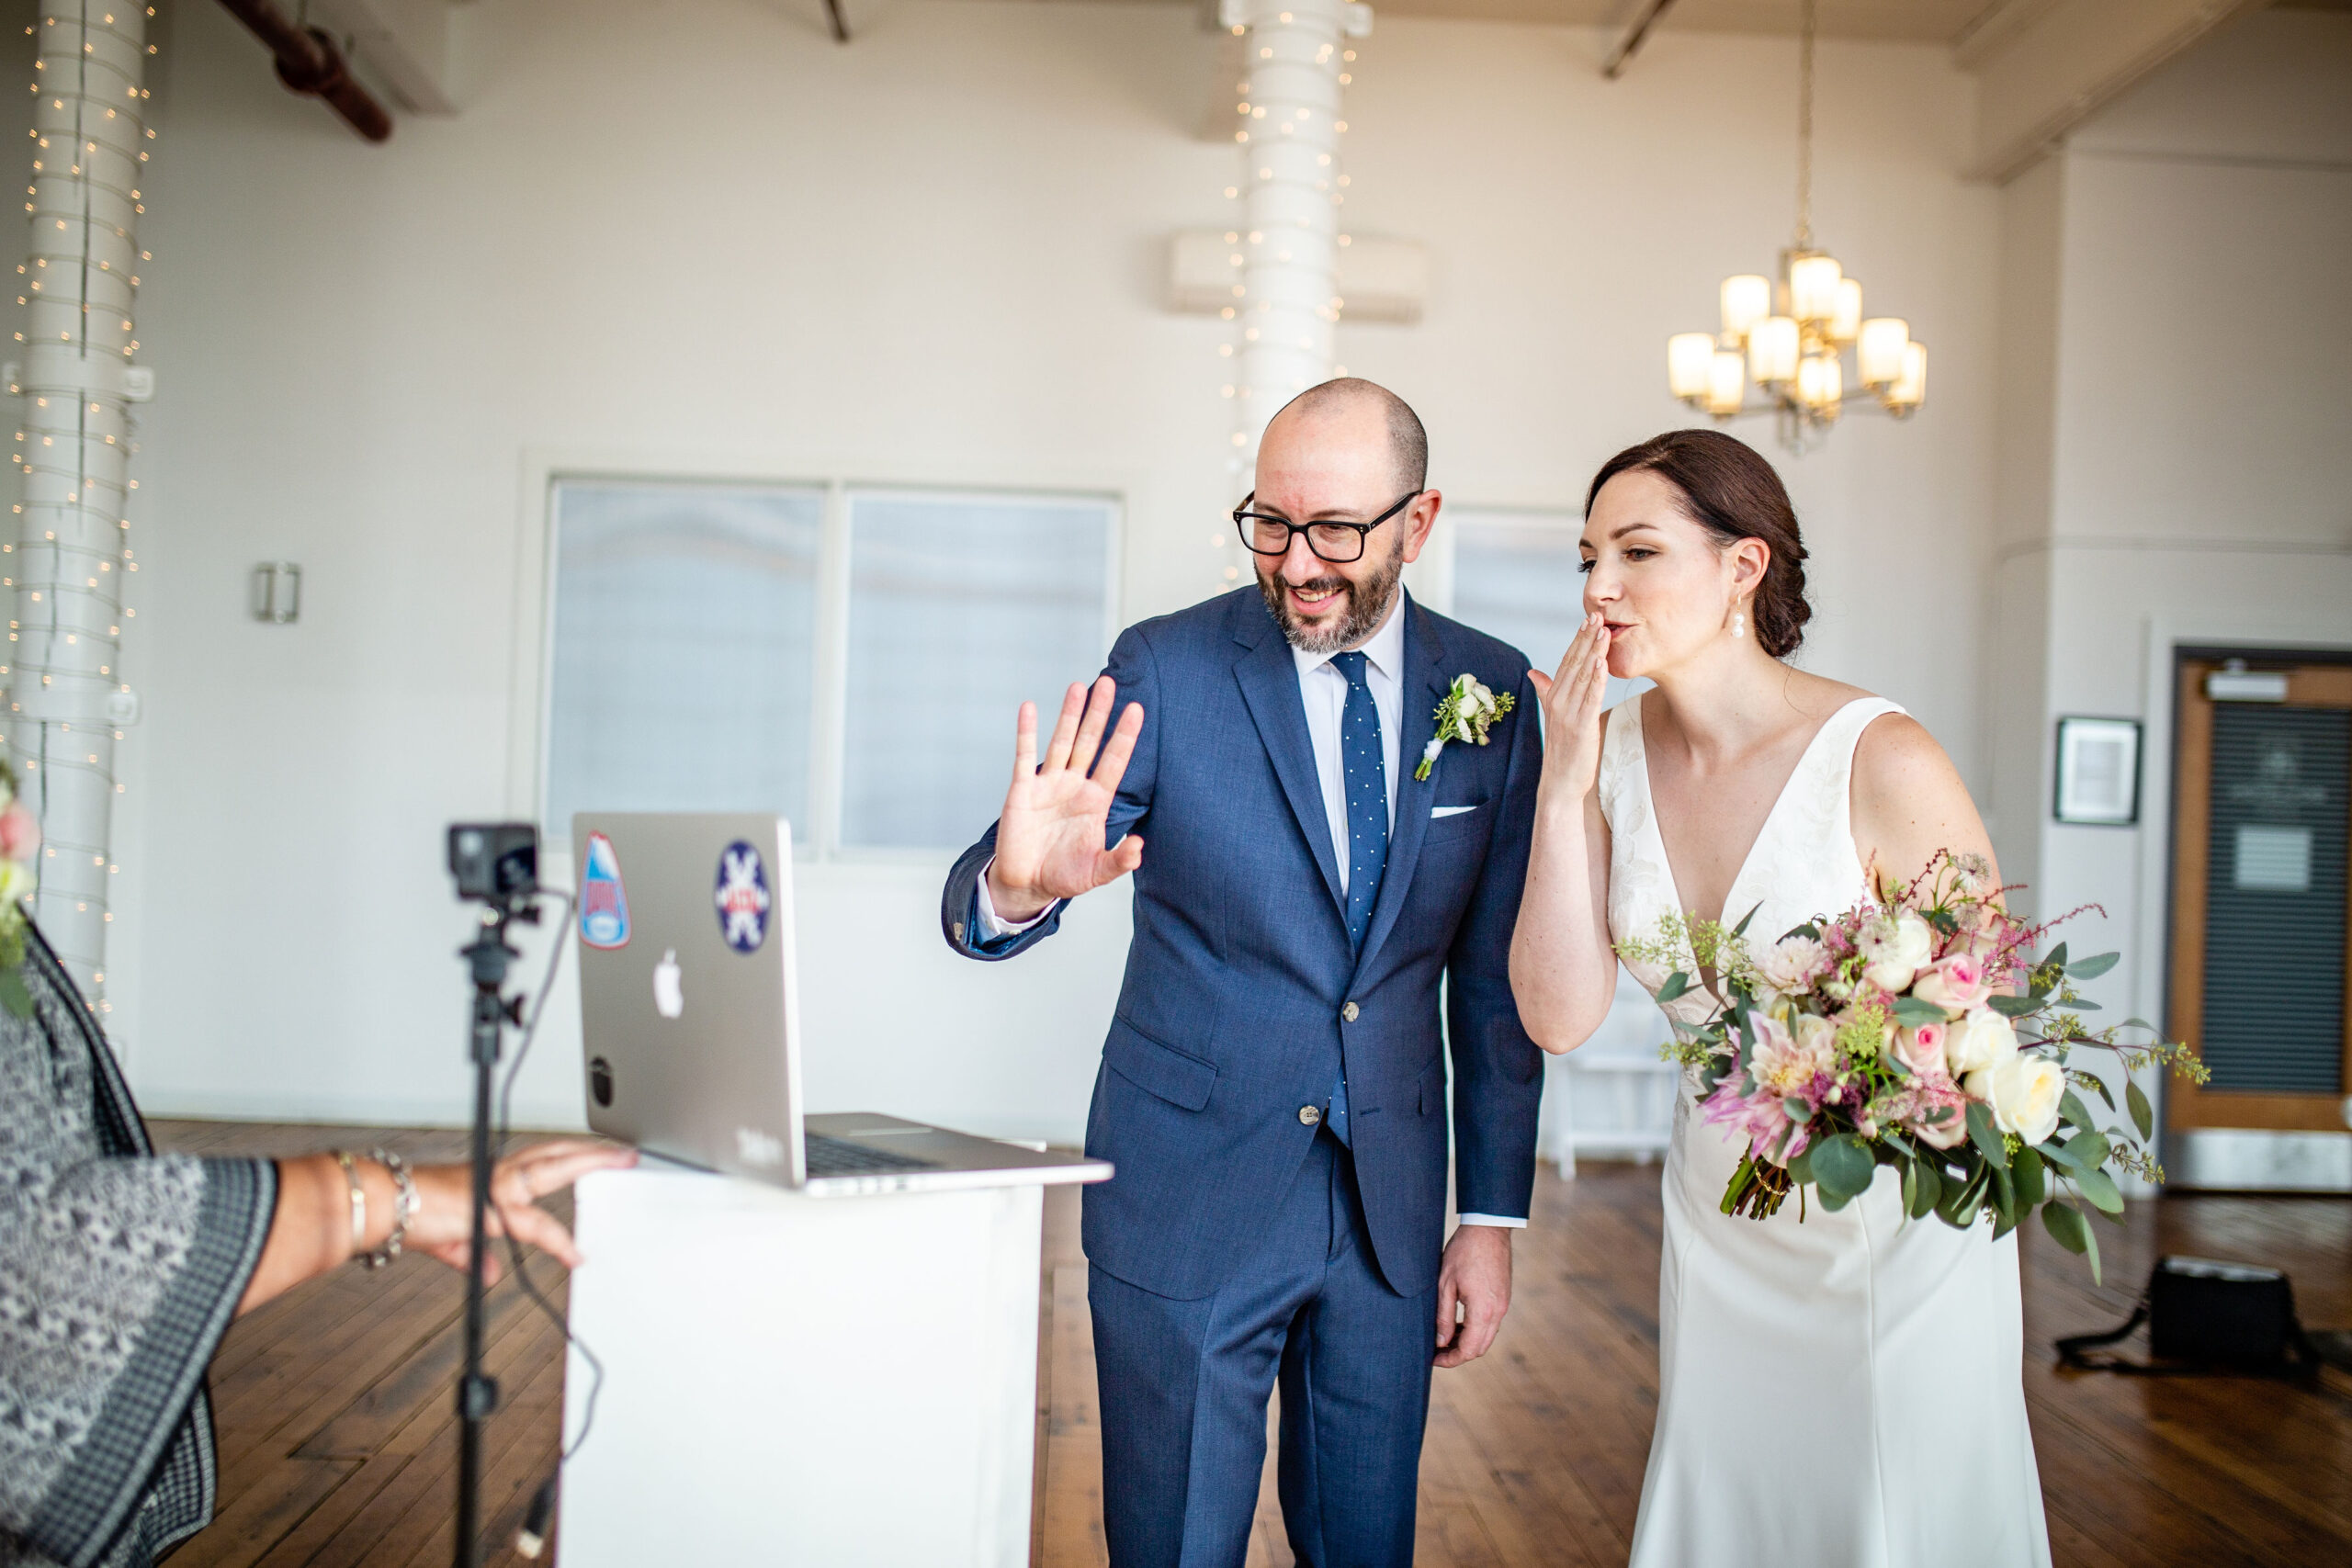 wedding couple looking at computer screen